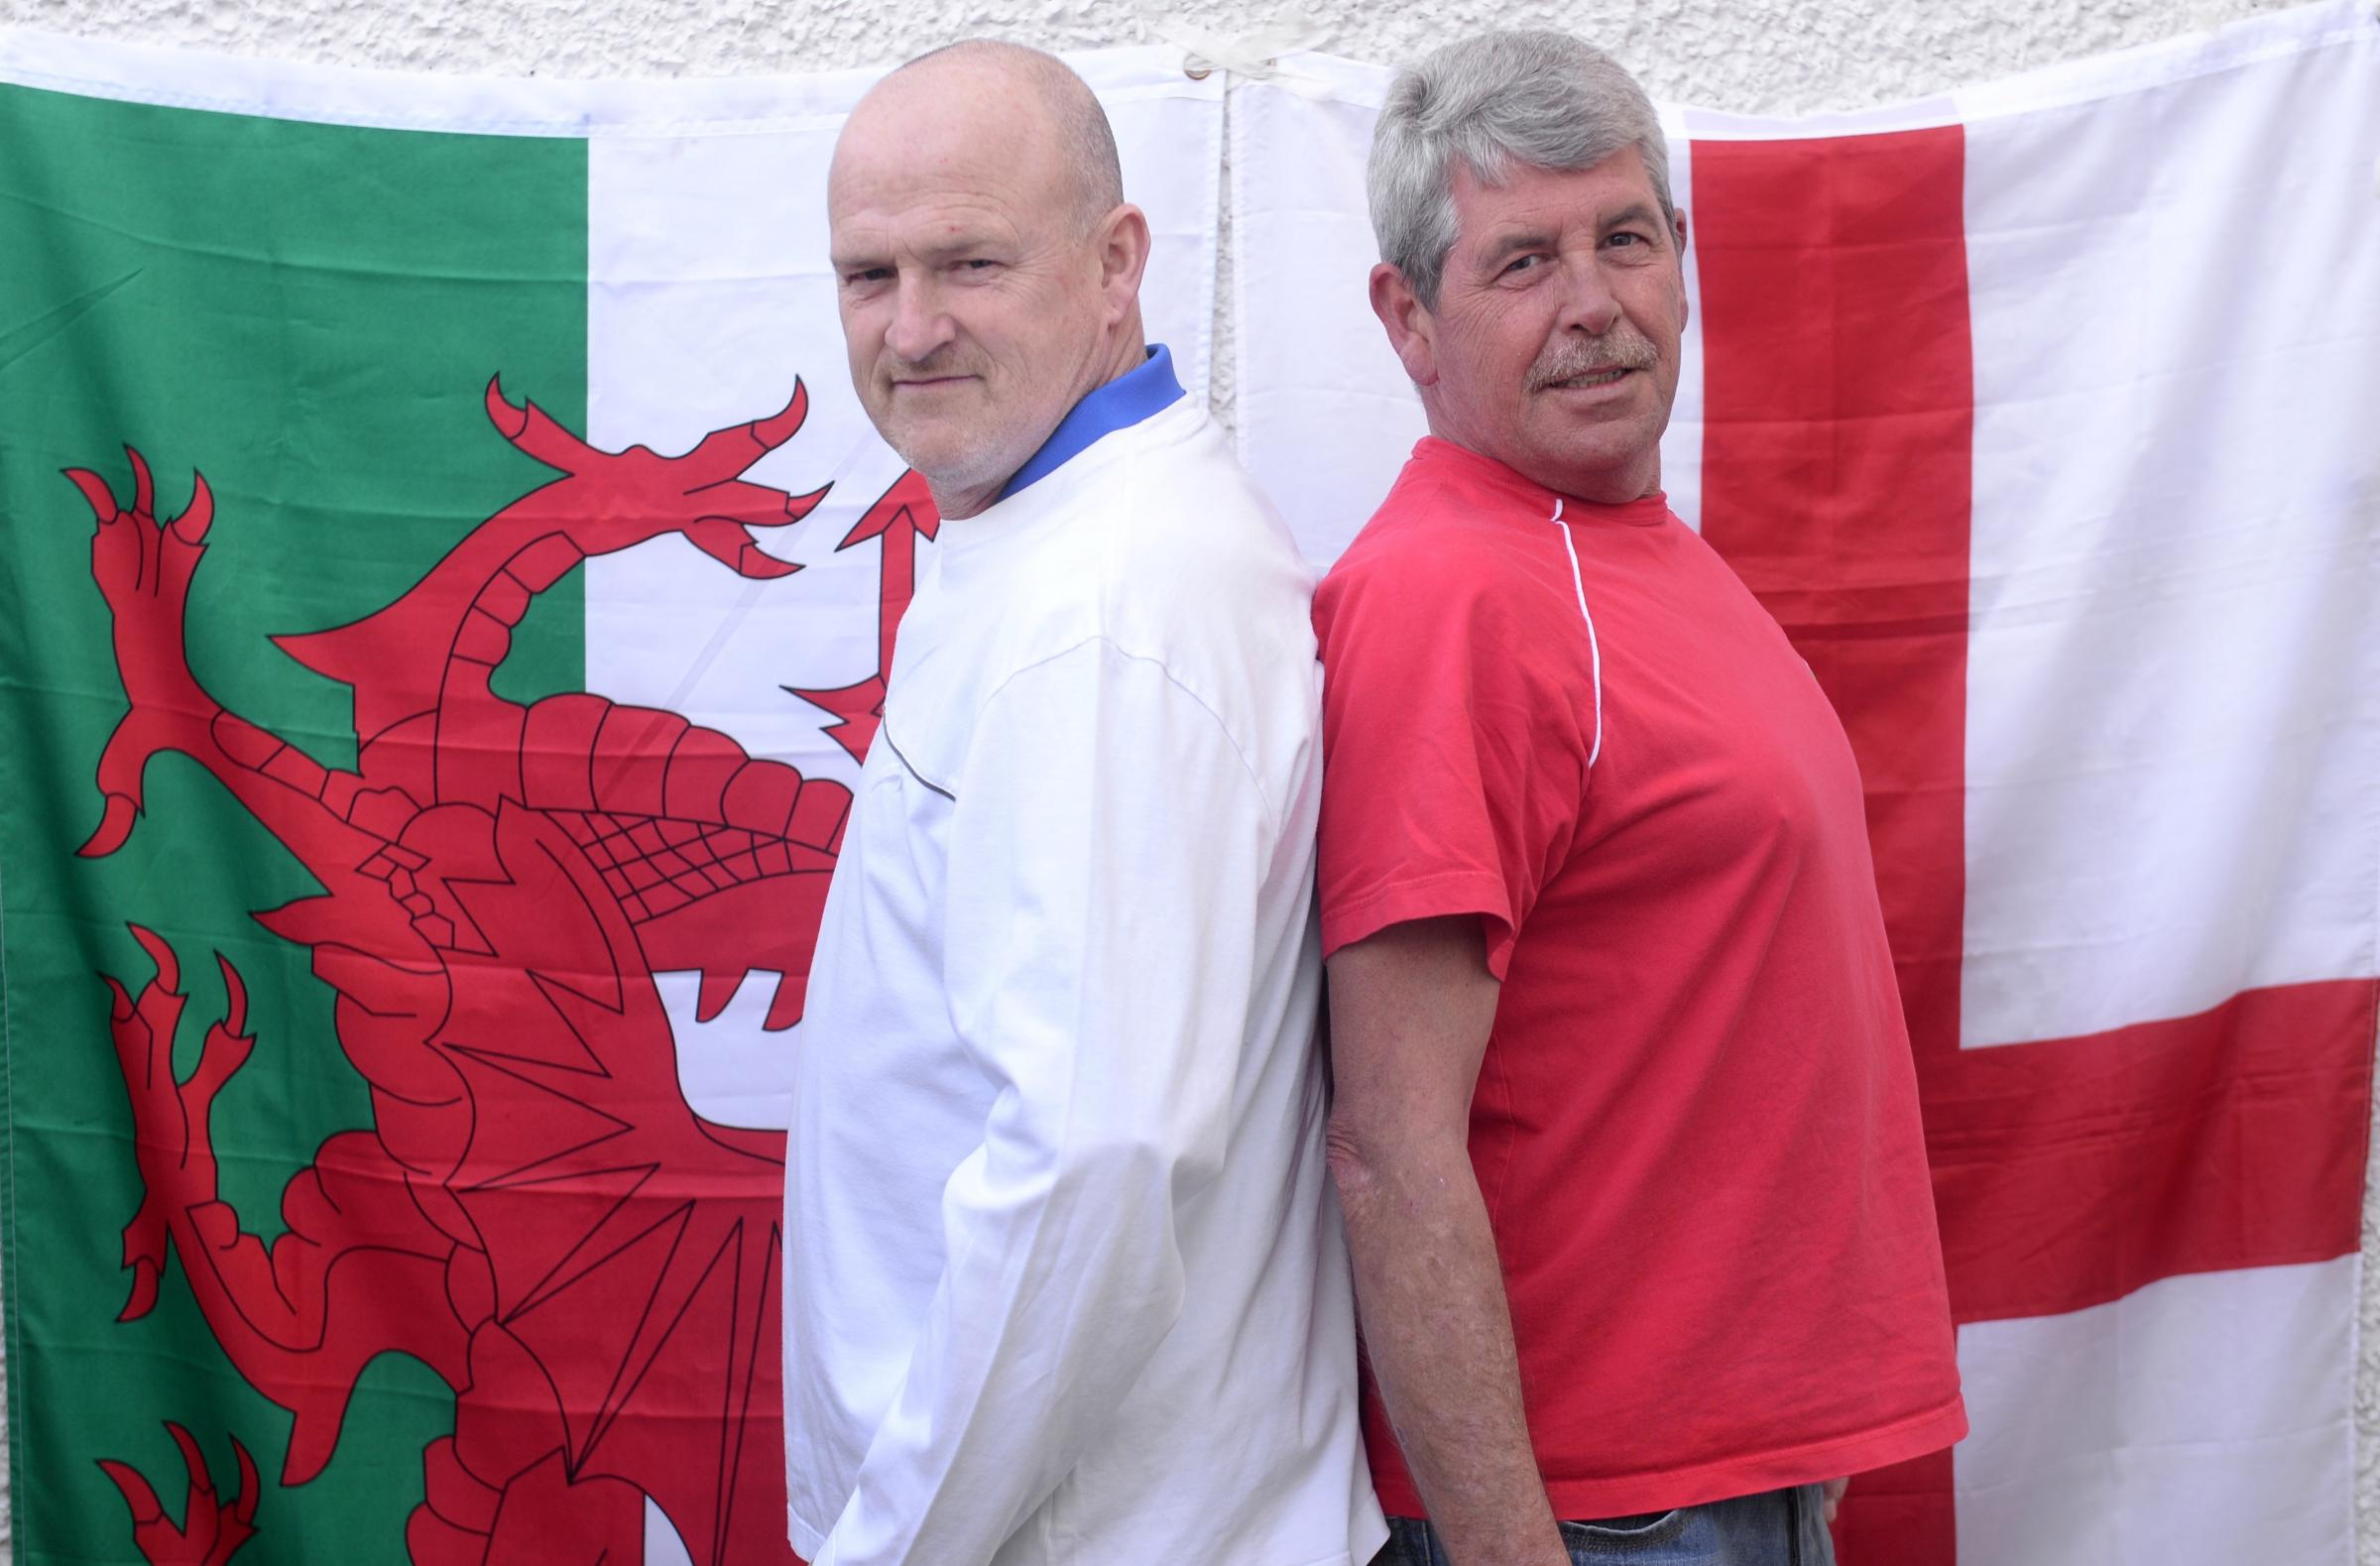 Gwent gears up for England v Wales